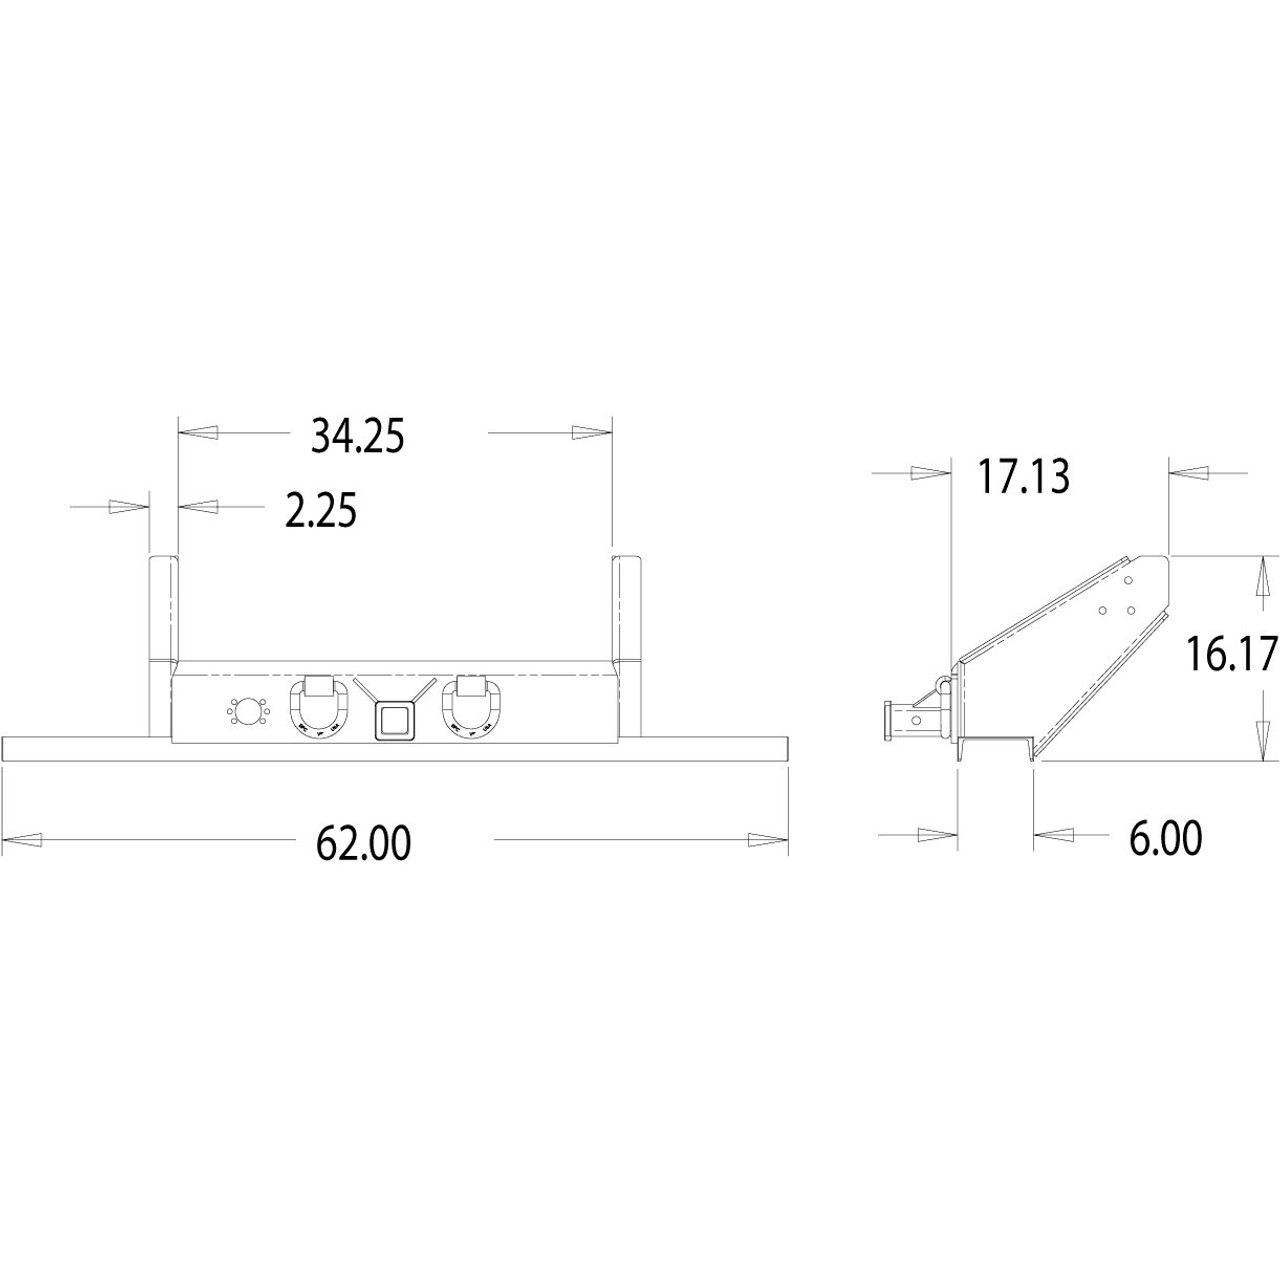 1809055 Flatbed Dump Hitch Bumper With 2 Receiver Tube Croft Wiring Diagram